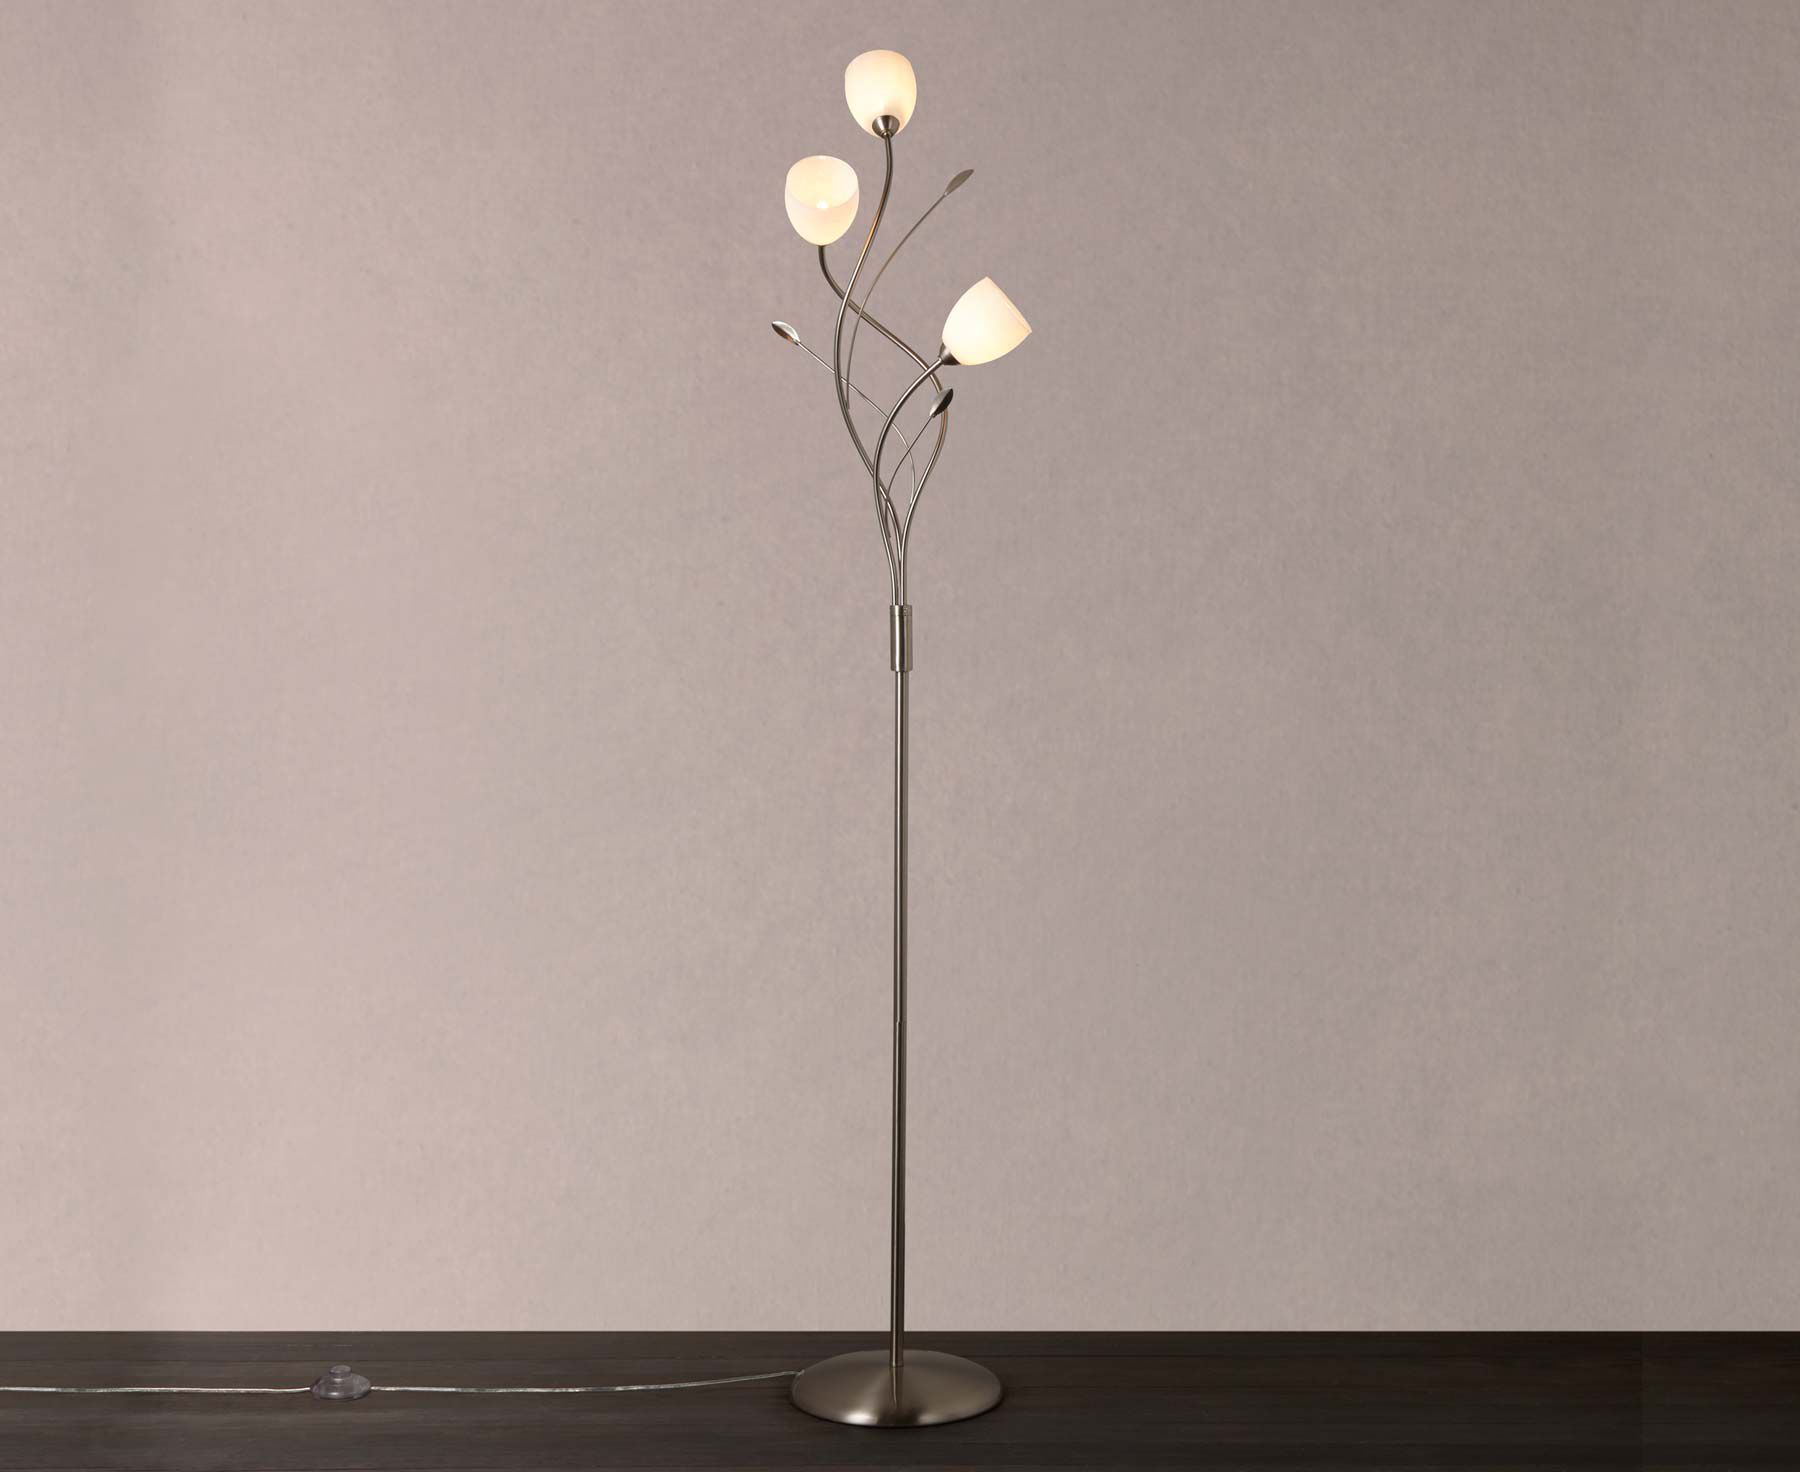 How To Choose Lighting For Your Home Wiring A Modern Light Fitting Floor Lamps